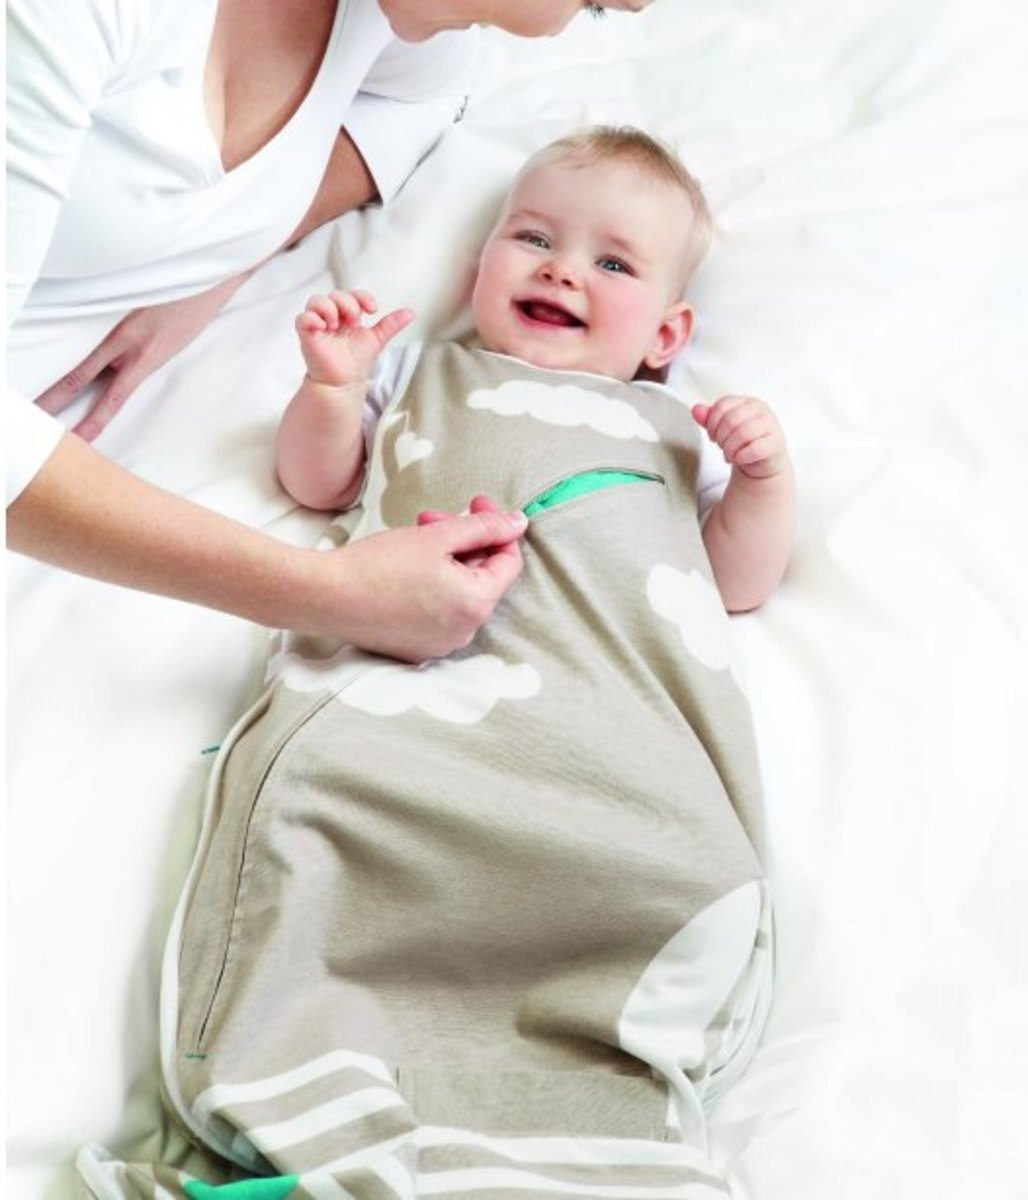 The Inventa Sleep Bag has mesh vents that help control the baby's temperature.